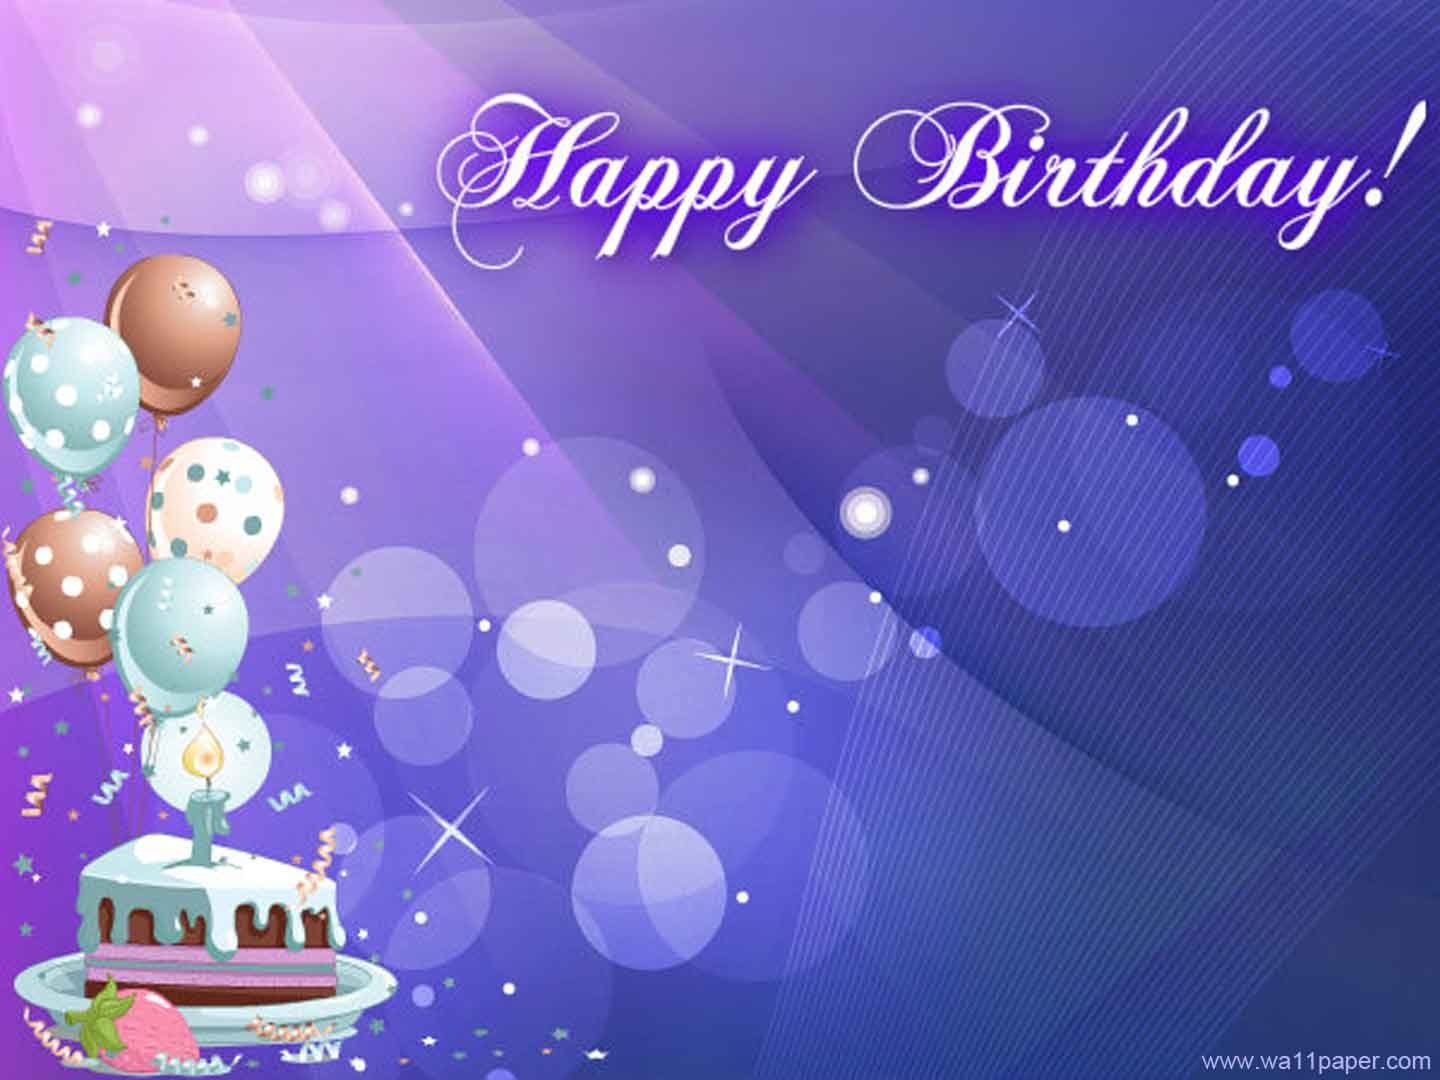 Wallpaper Birthday